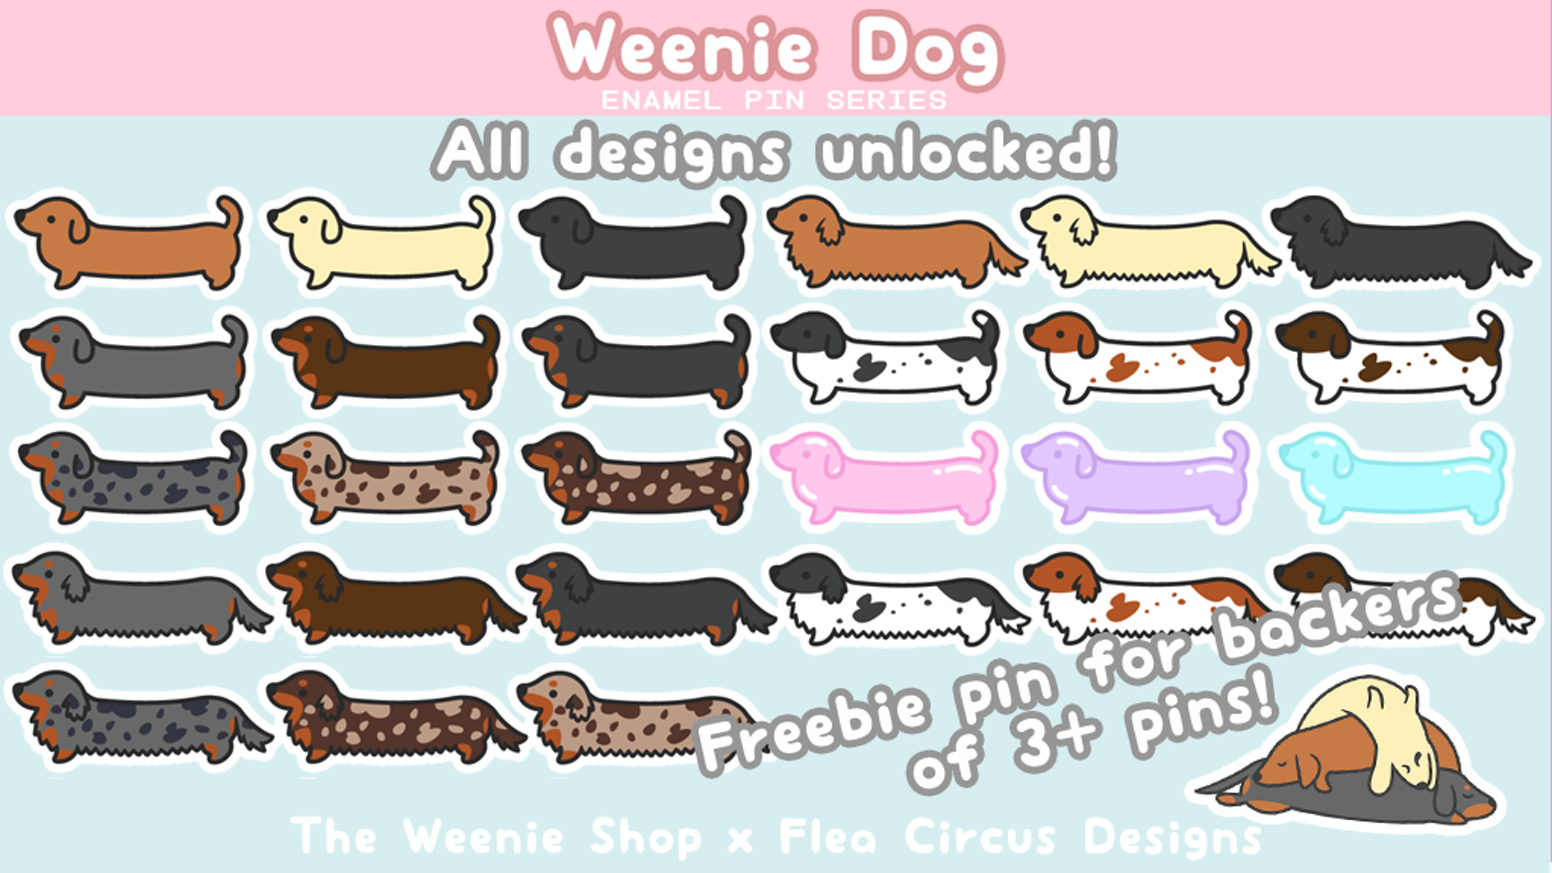 Weenie dog enamel pins - now with more designs! A dachshund for everyone~